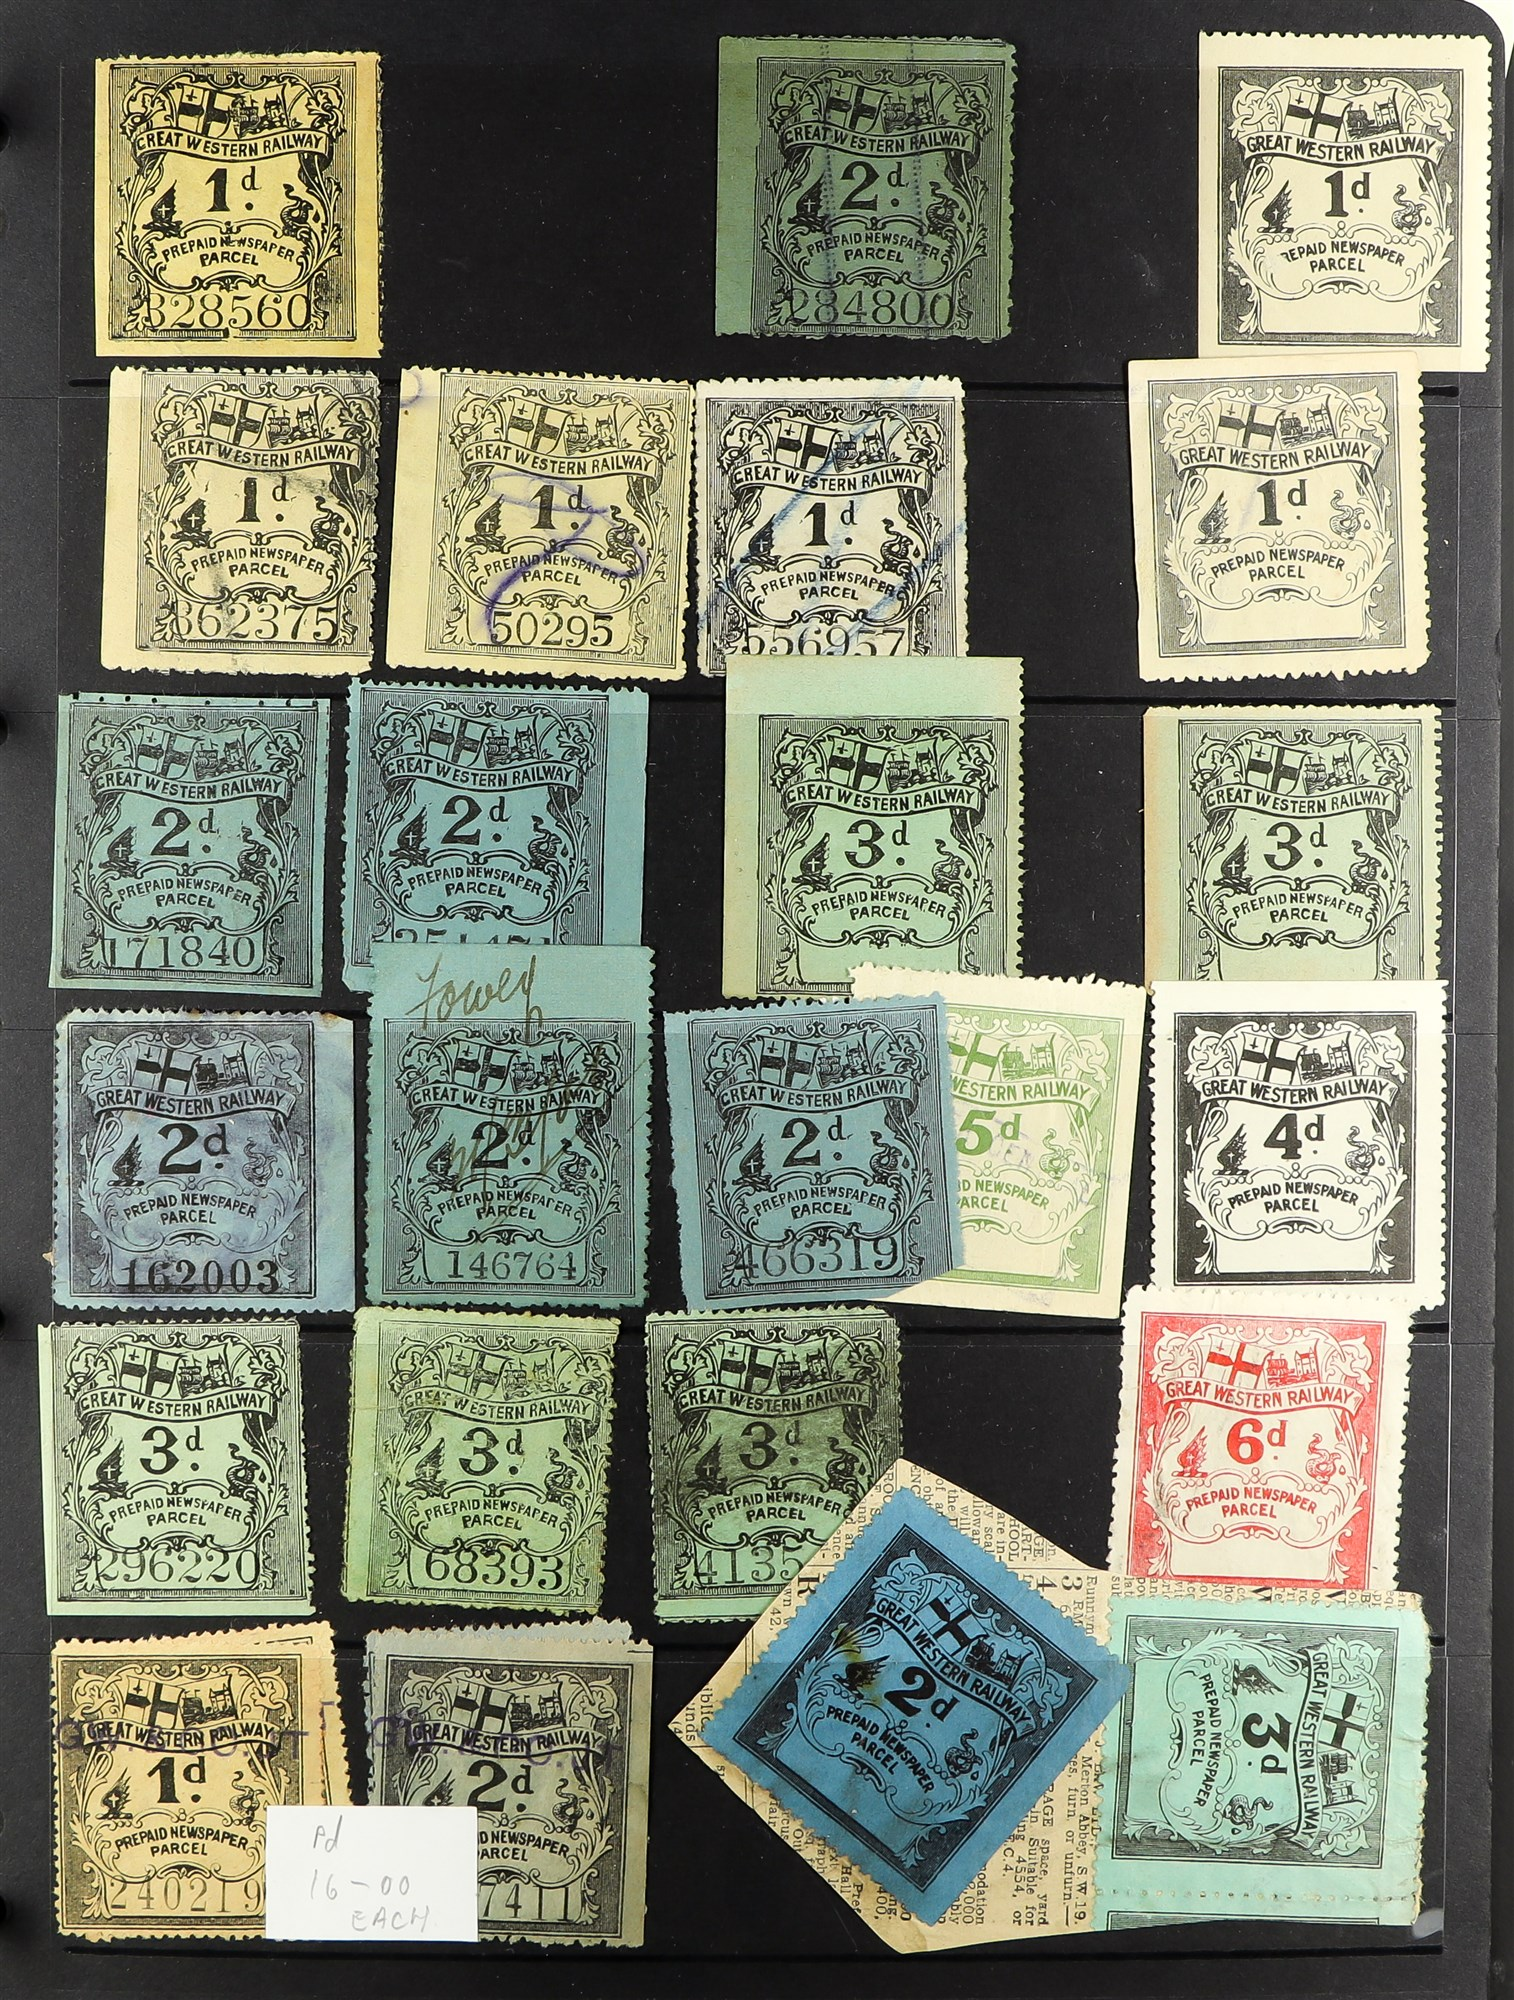 GREAT BRITAIN RAILWAY LETTER AND NEWSPAPER STAMPS 1890's-1940's COLLECTION in two albums, mint and - Image 17 of 24